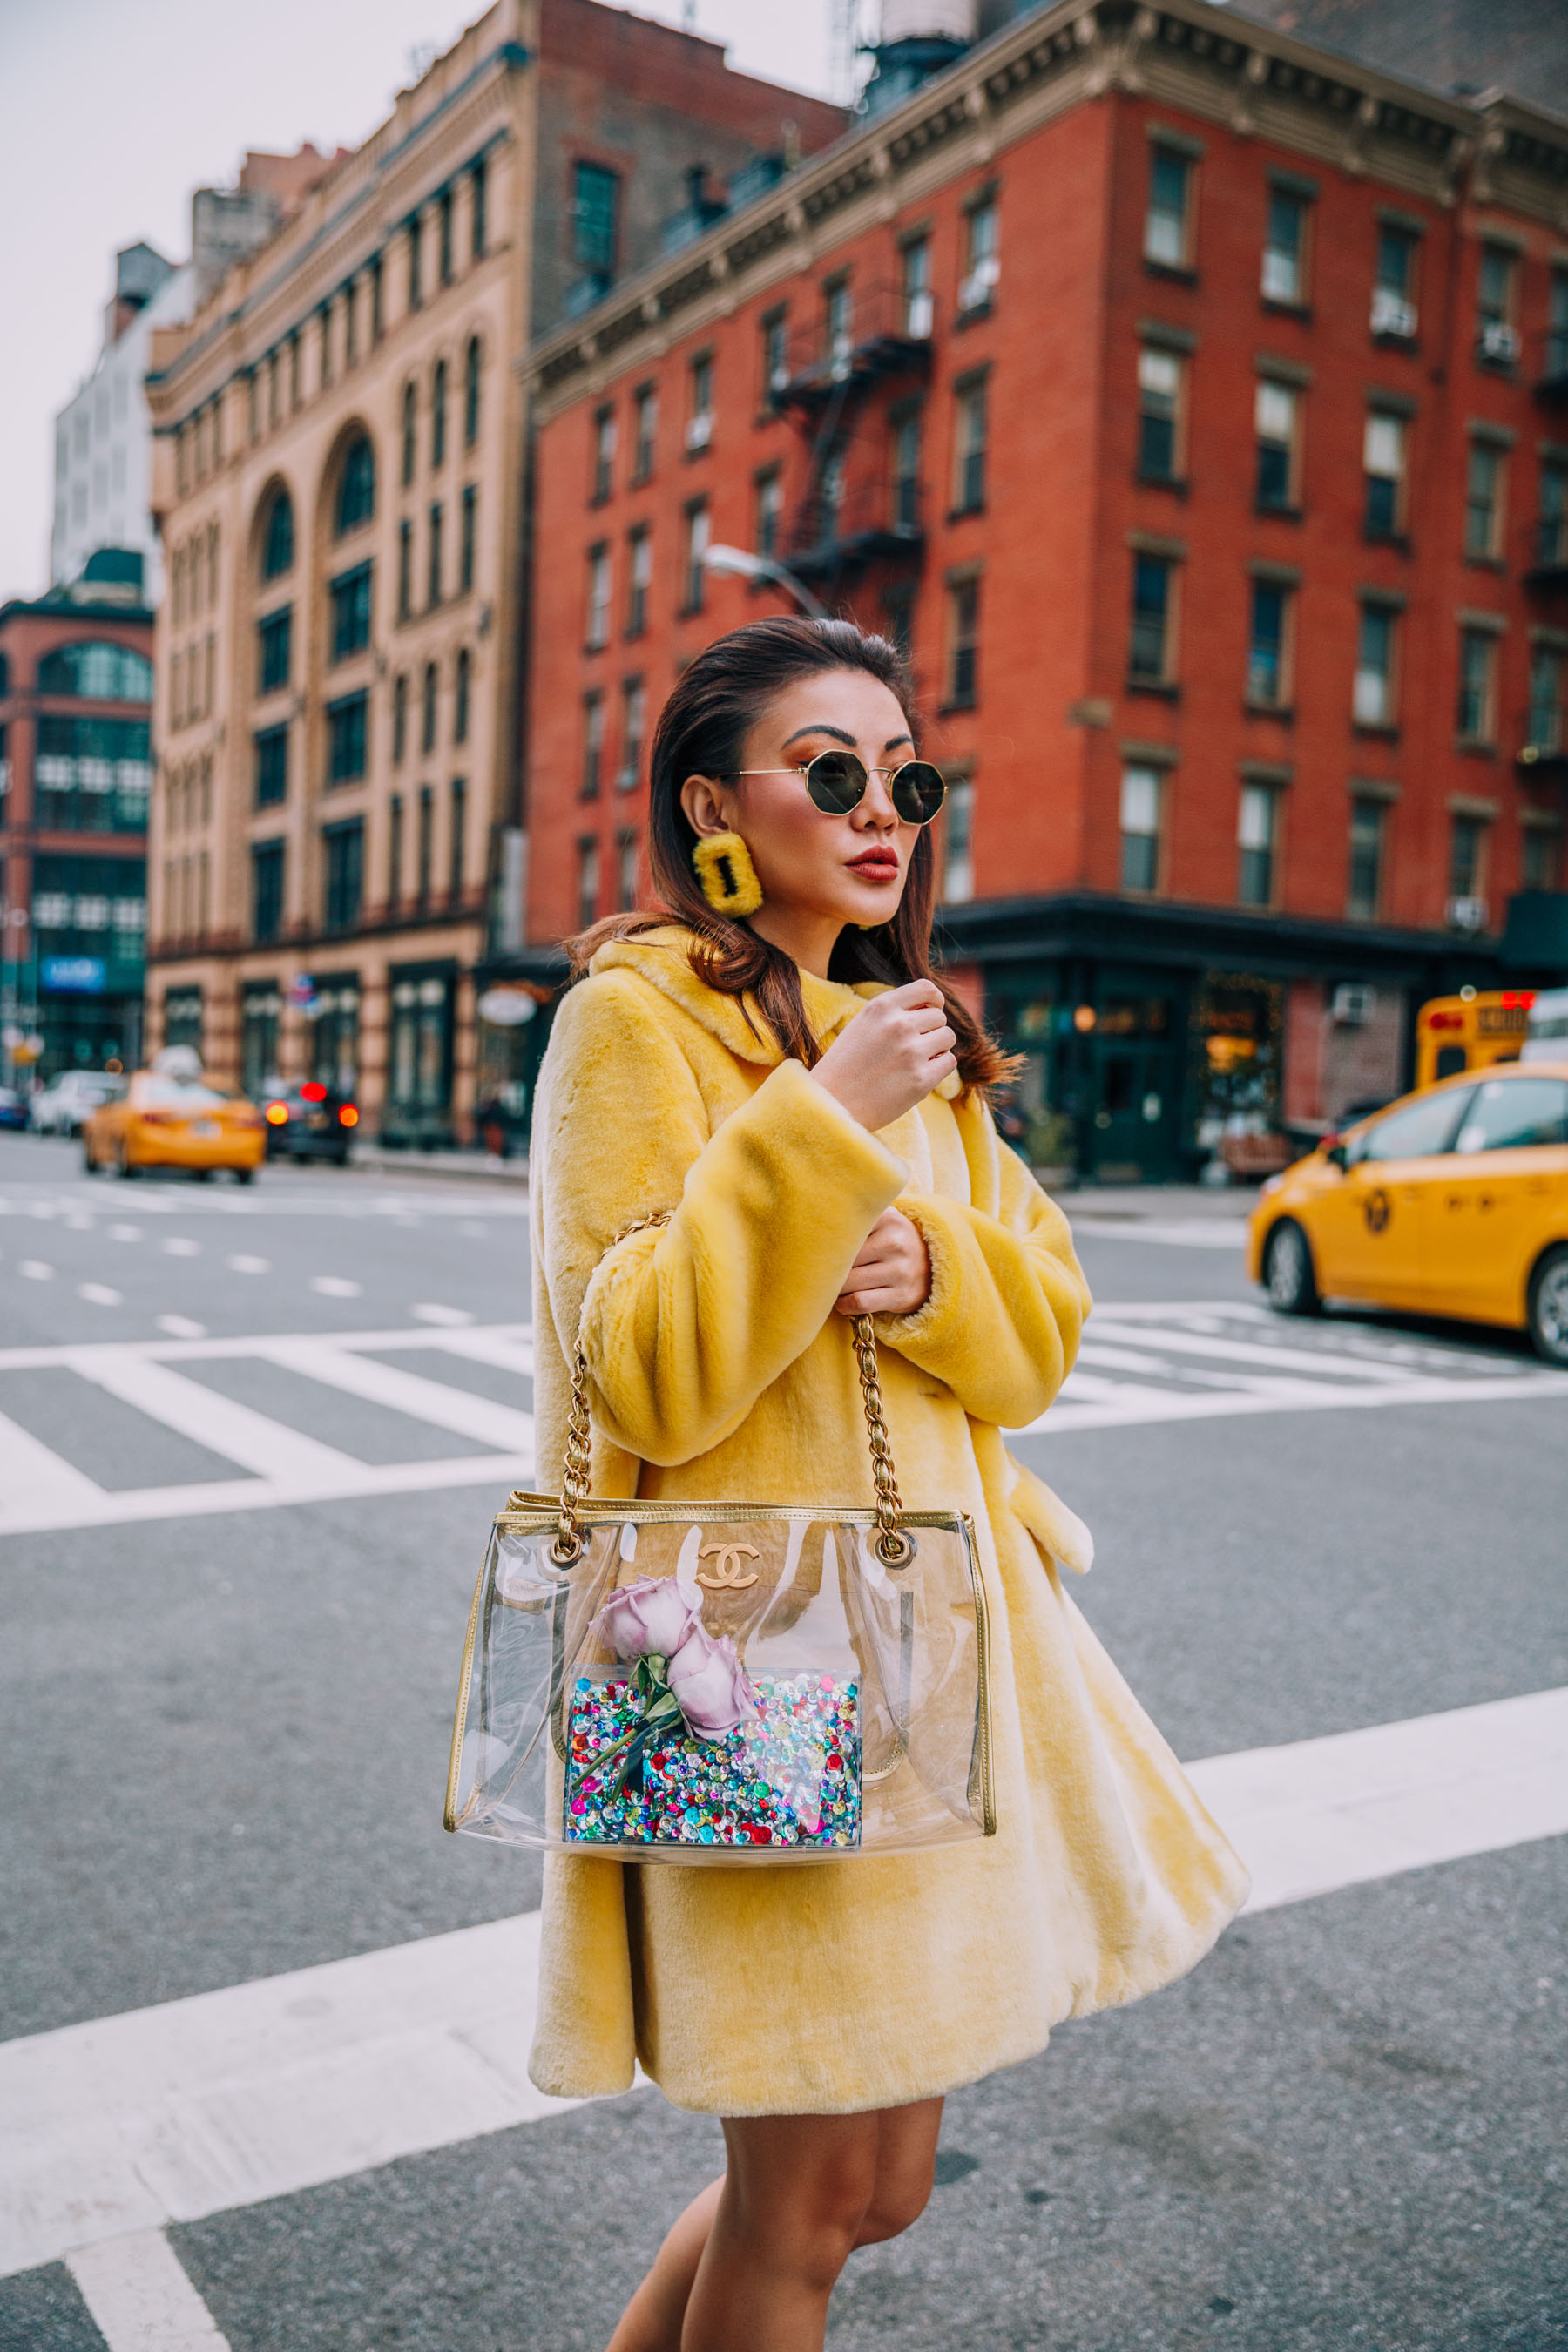 NYFW 2018 Street Style - Shrimps Yellow Fur Coat, Yellow Earrings, and Clear Chanel Bag // Notjessfashion.com